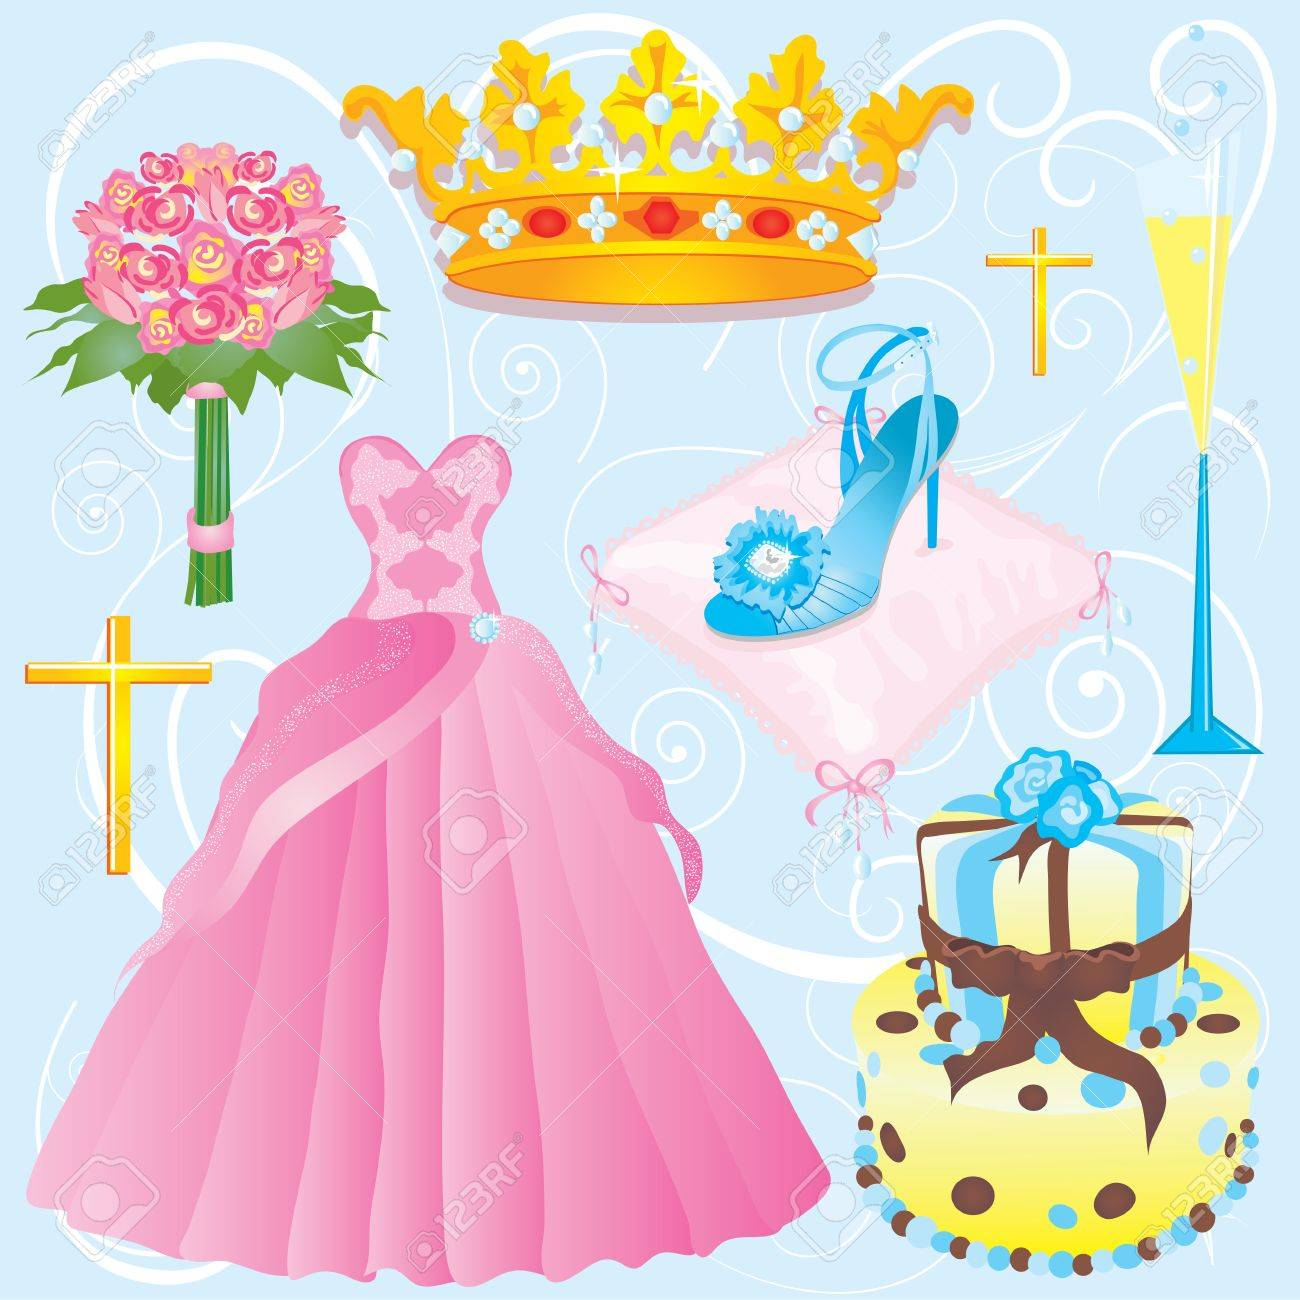 Quinceanera clip art or invitation for your party.